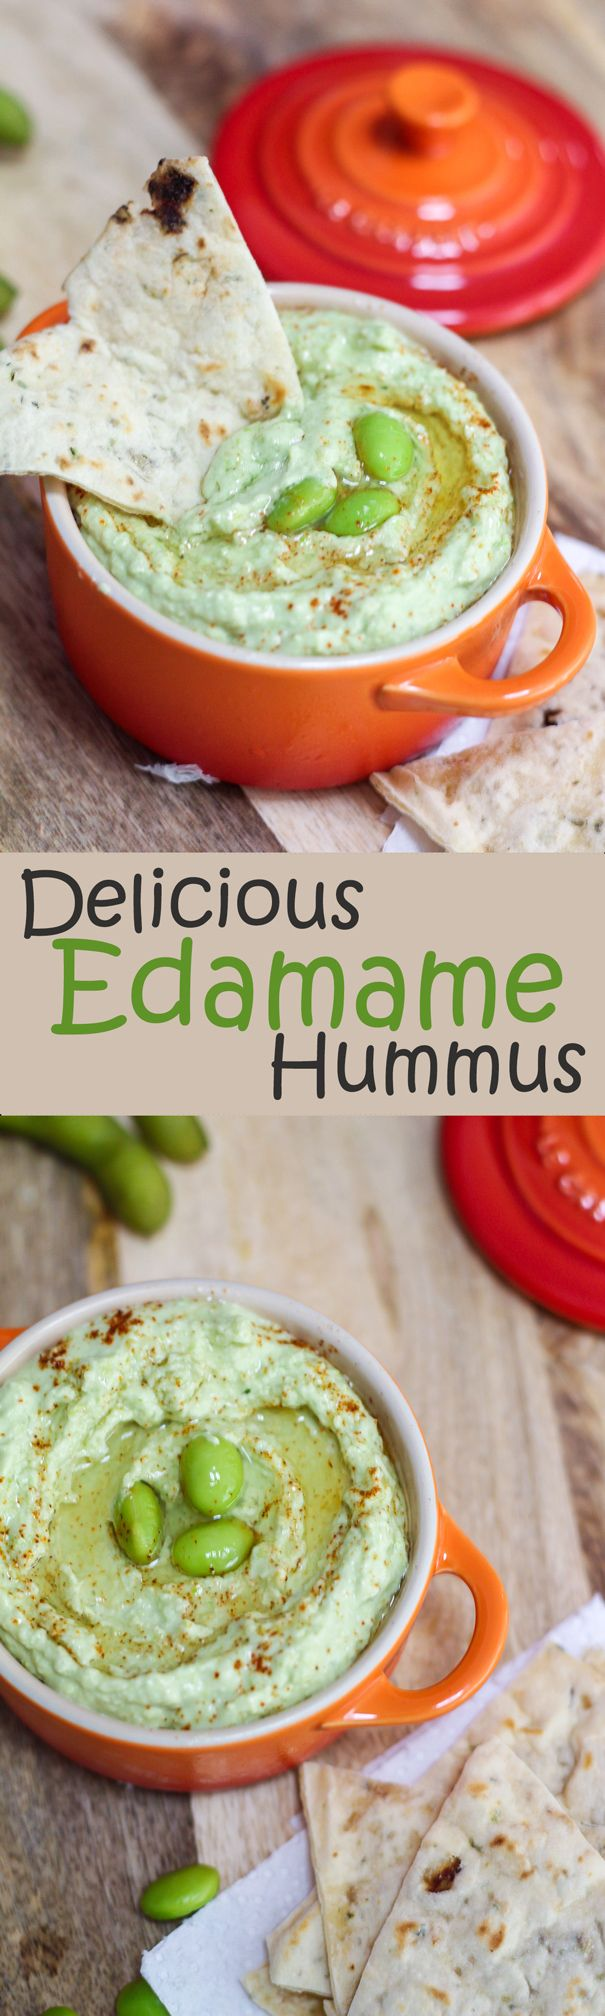 This delicious and healthy Edamame Hummus would only take you about 15 minutes from start to finish. It's slightly garlicky, lemony, creamy!